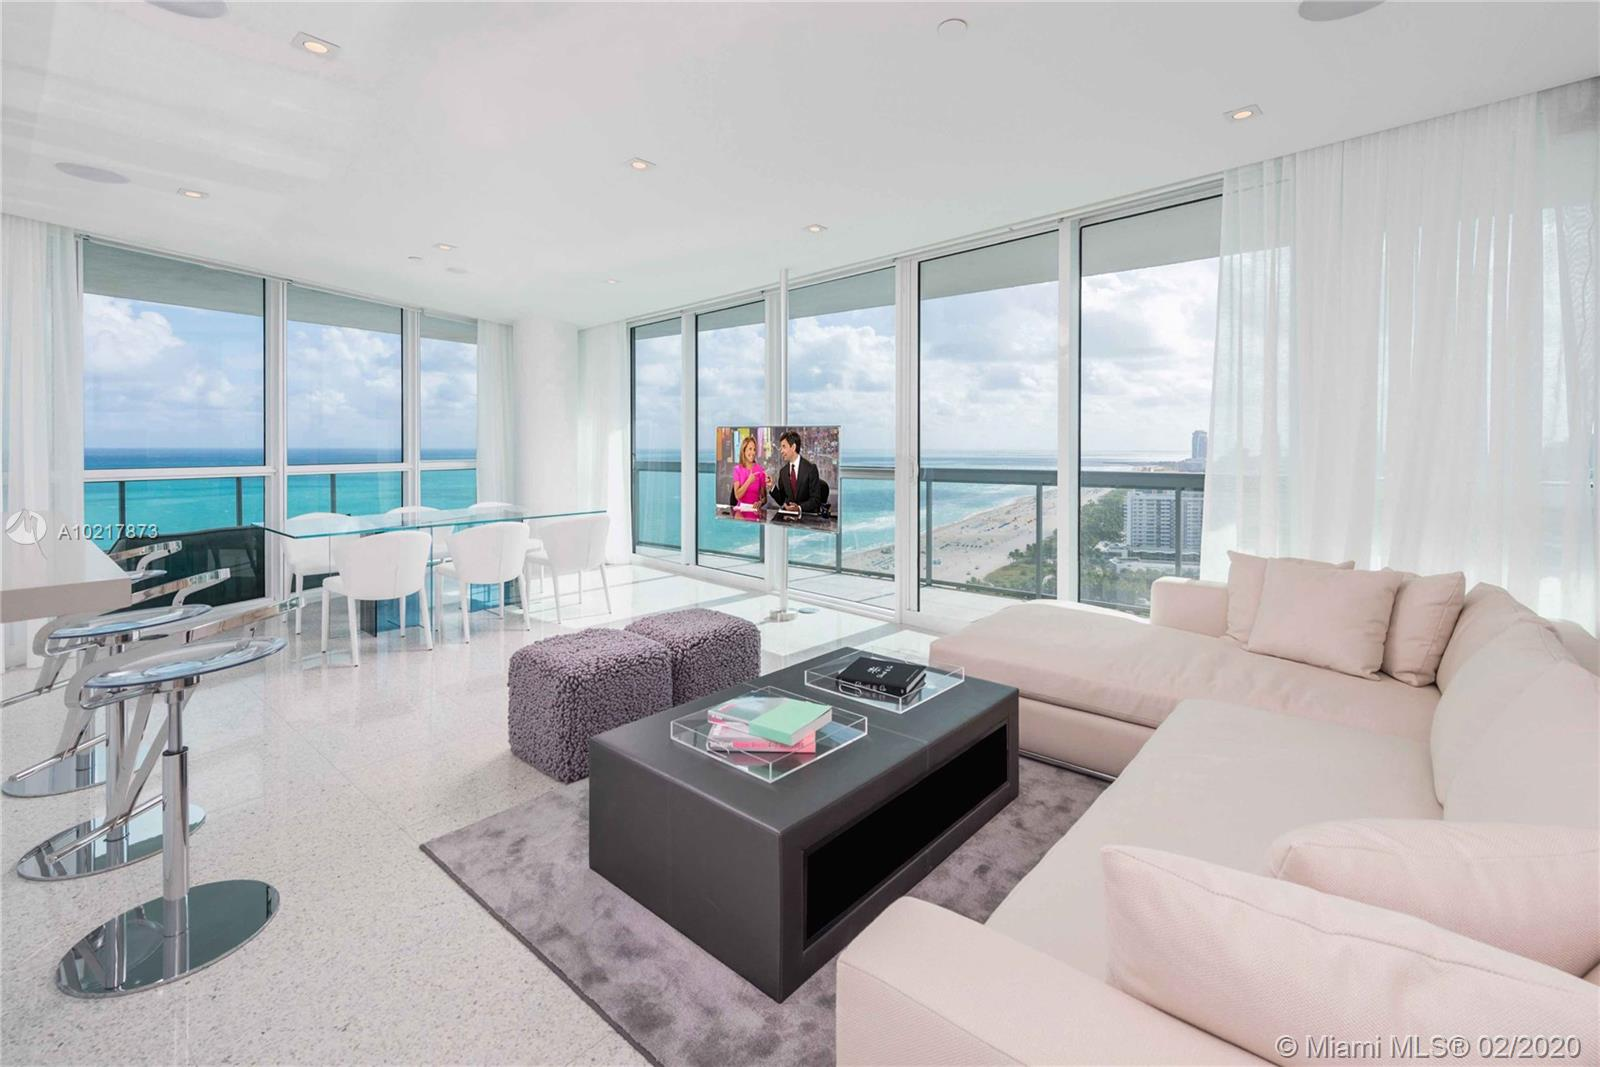 101 20th st-3208 miami-beach--fl-33139-a10217873-Pic18